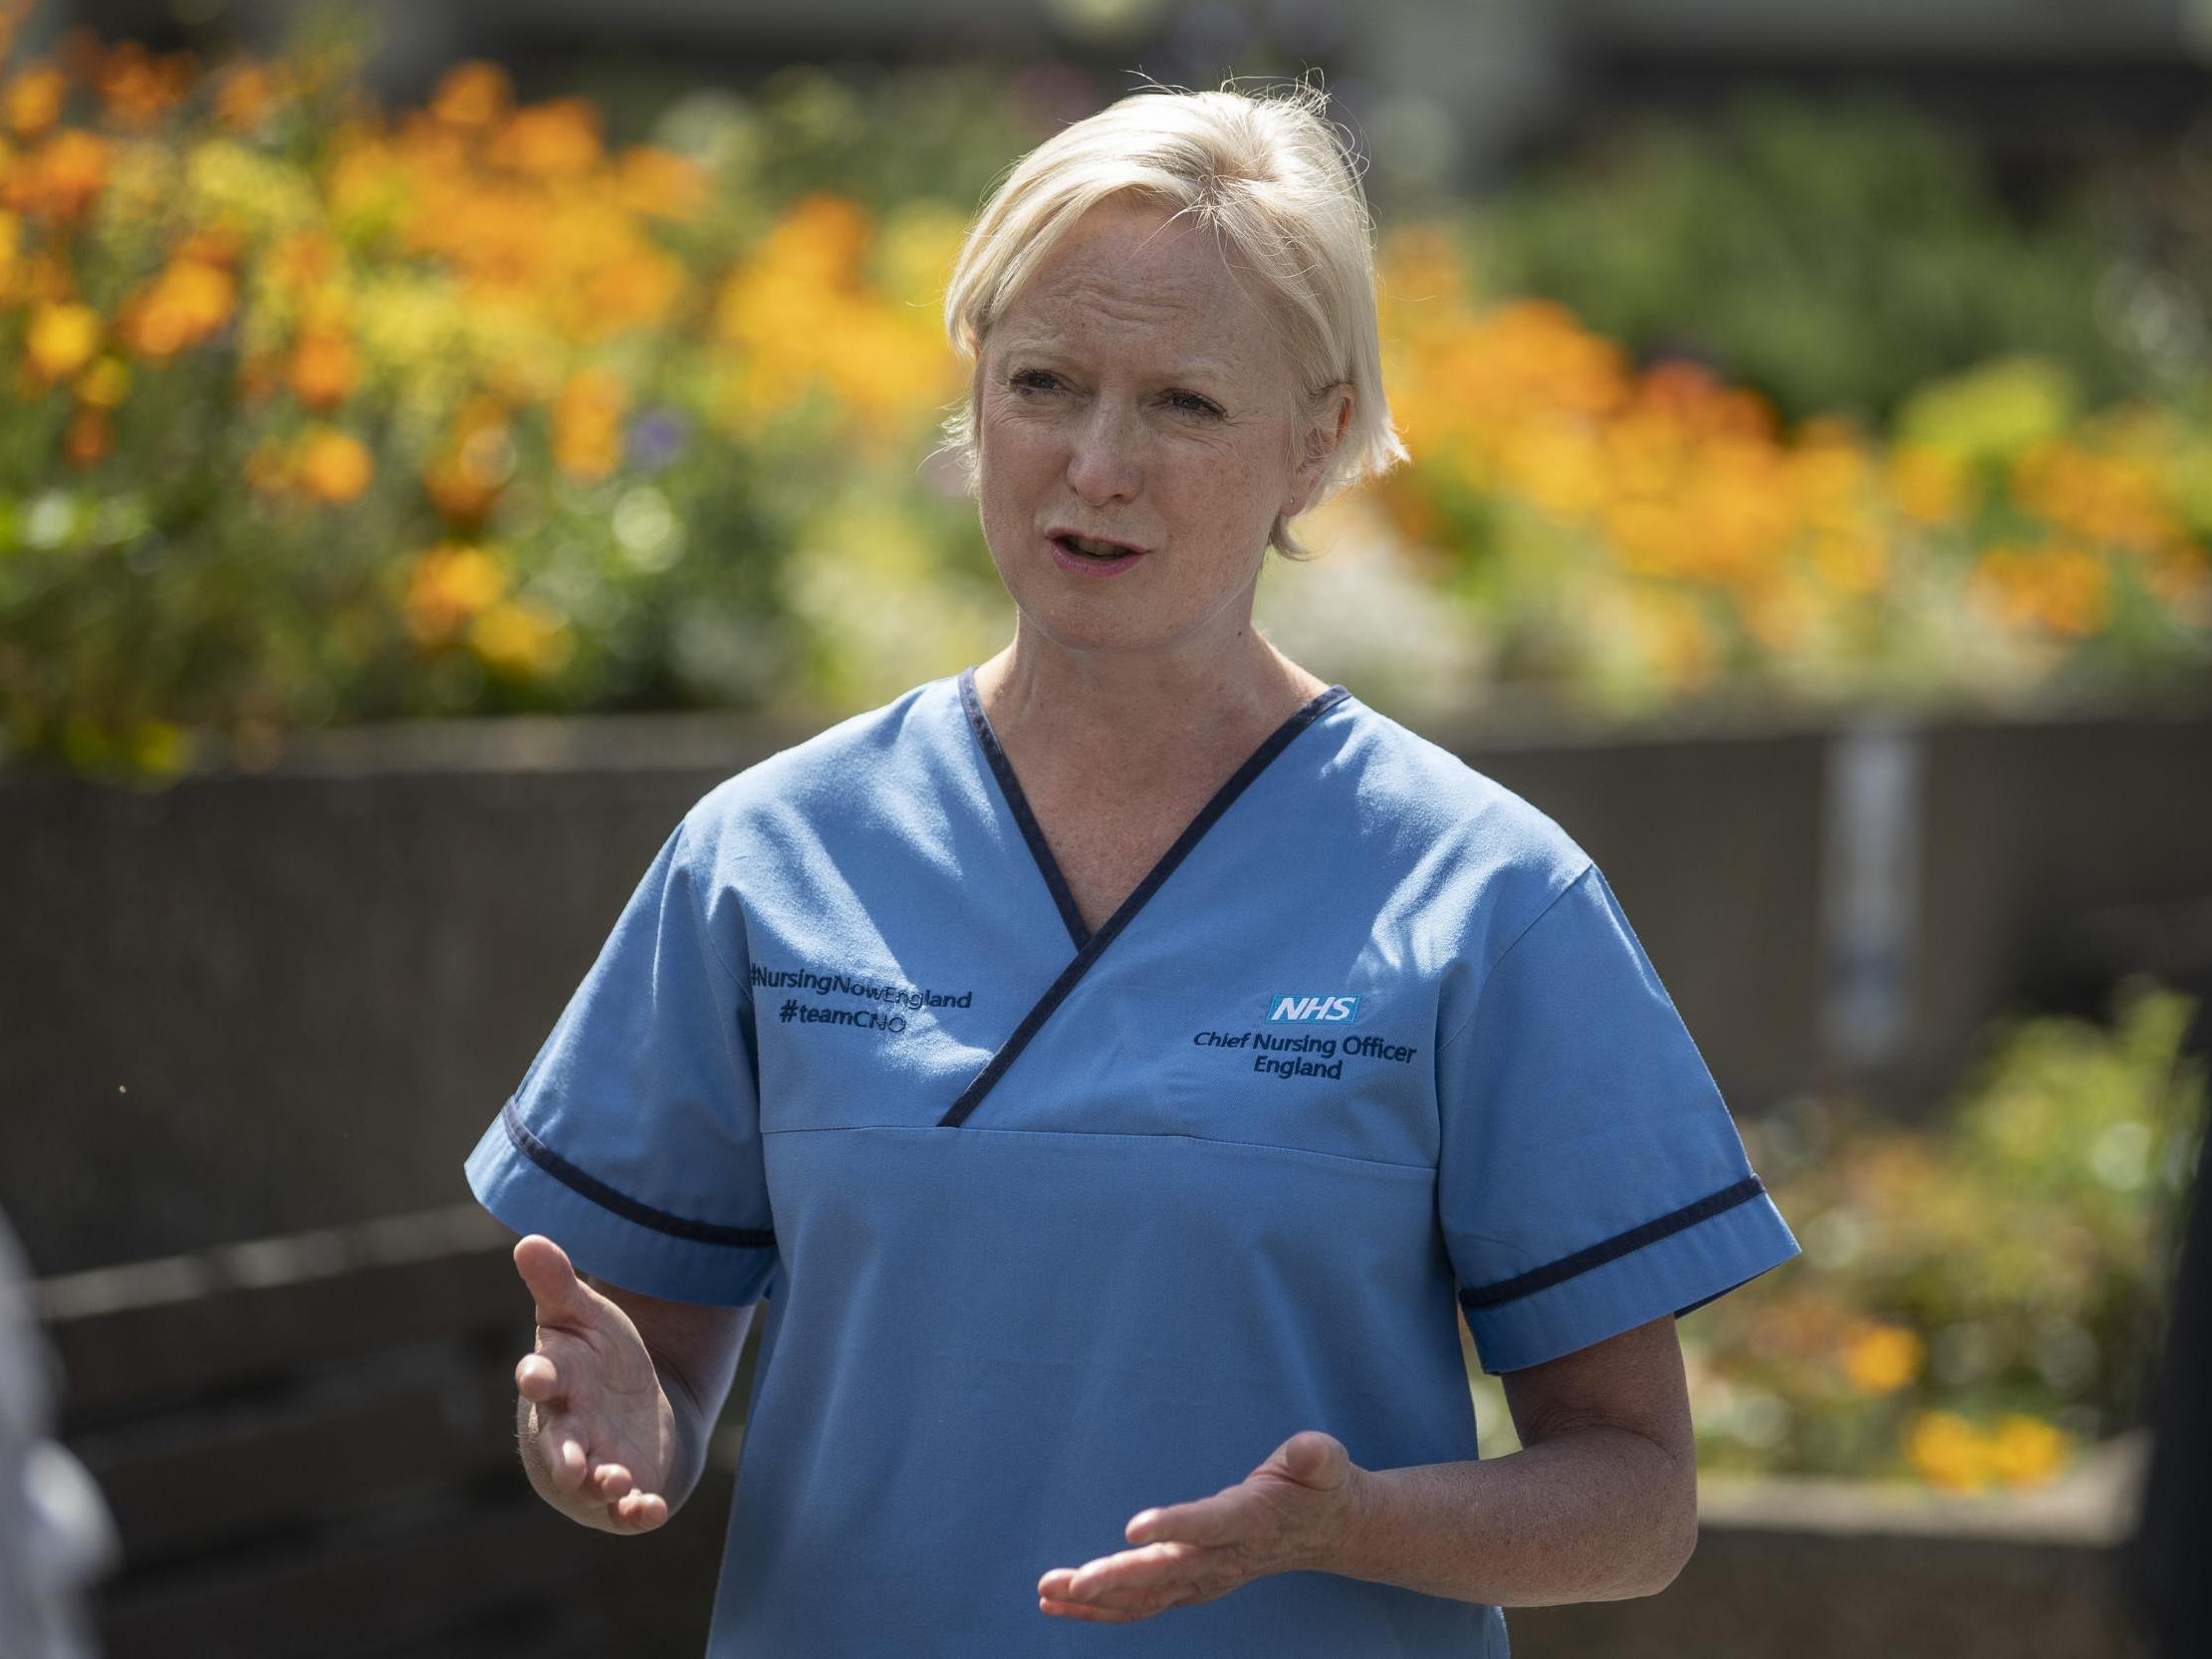 Nurses 'are expert professionals, not heroes', England's chief nursing officer says